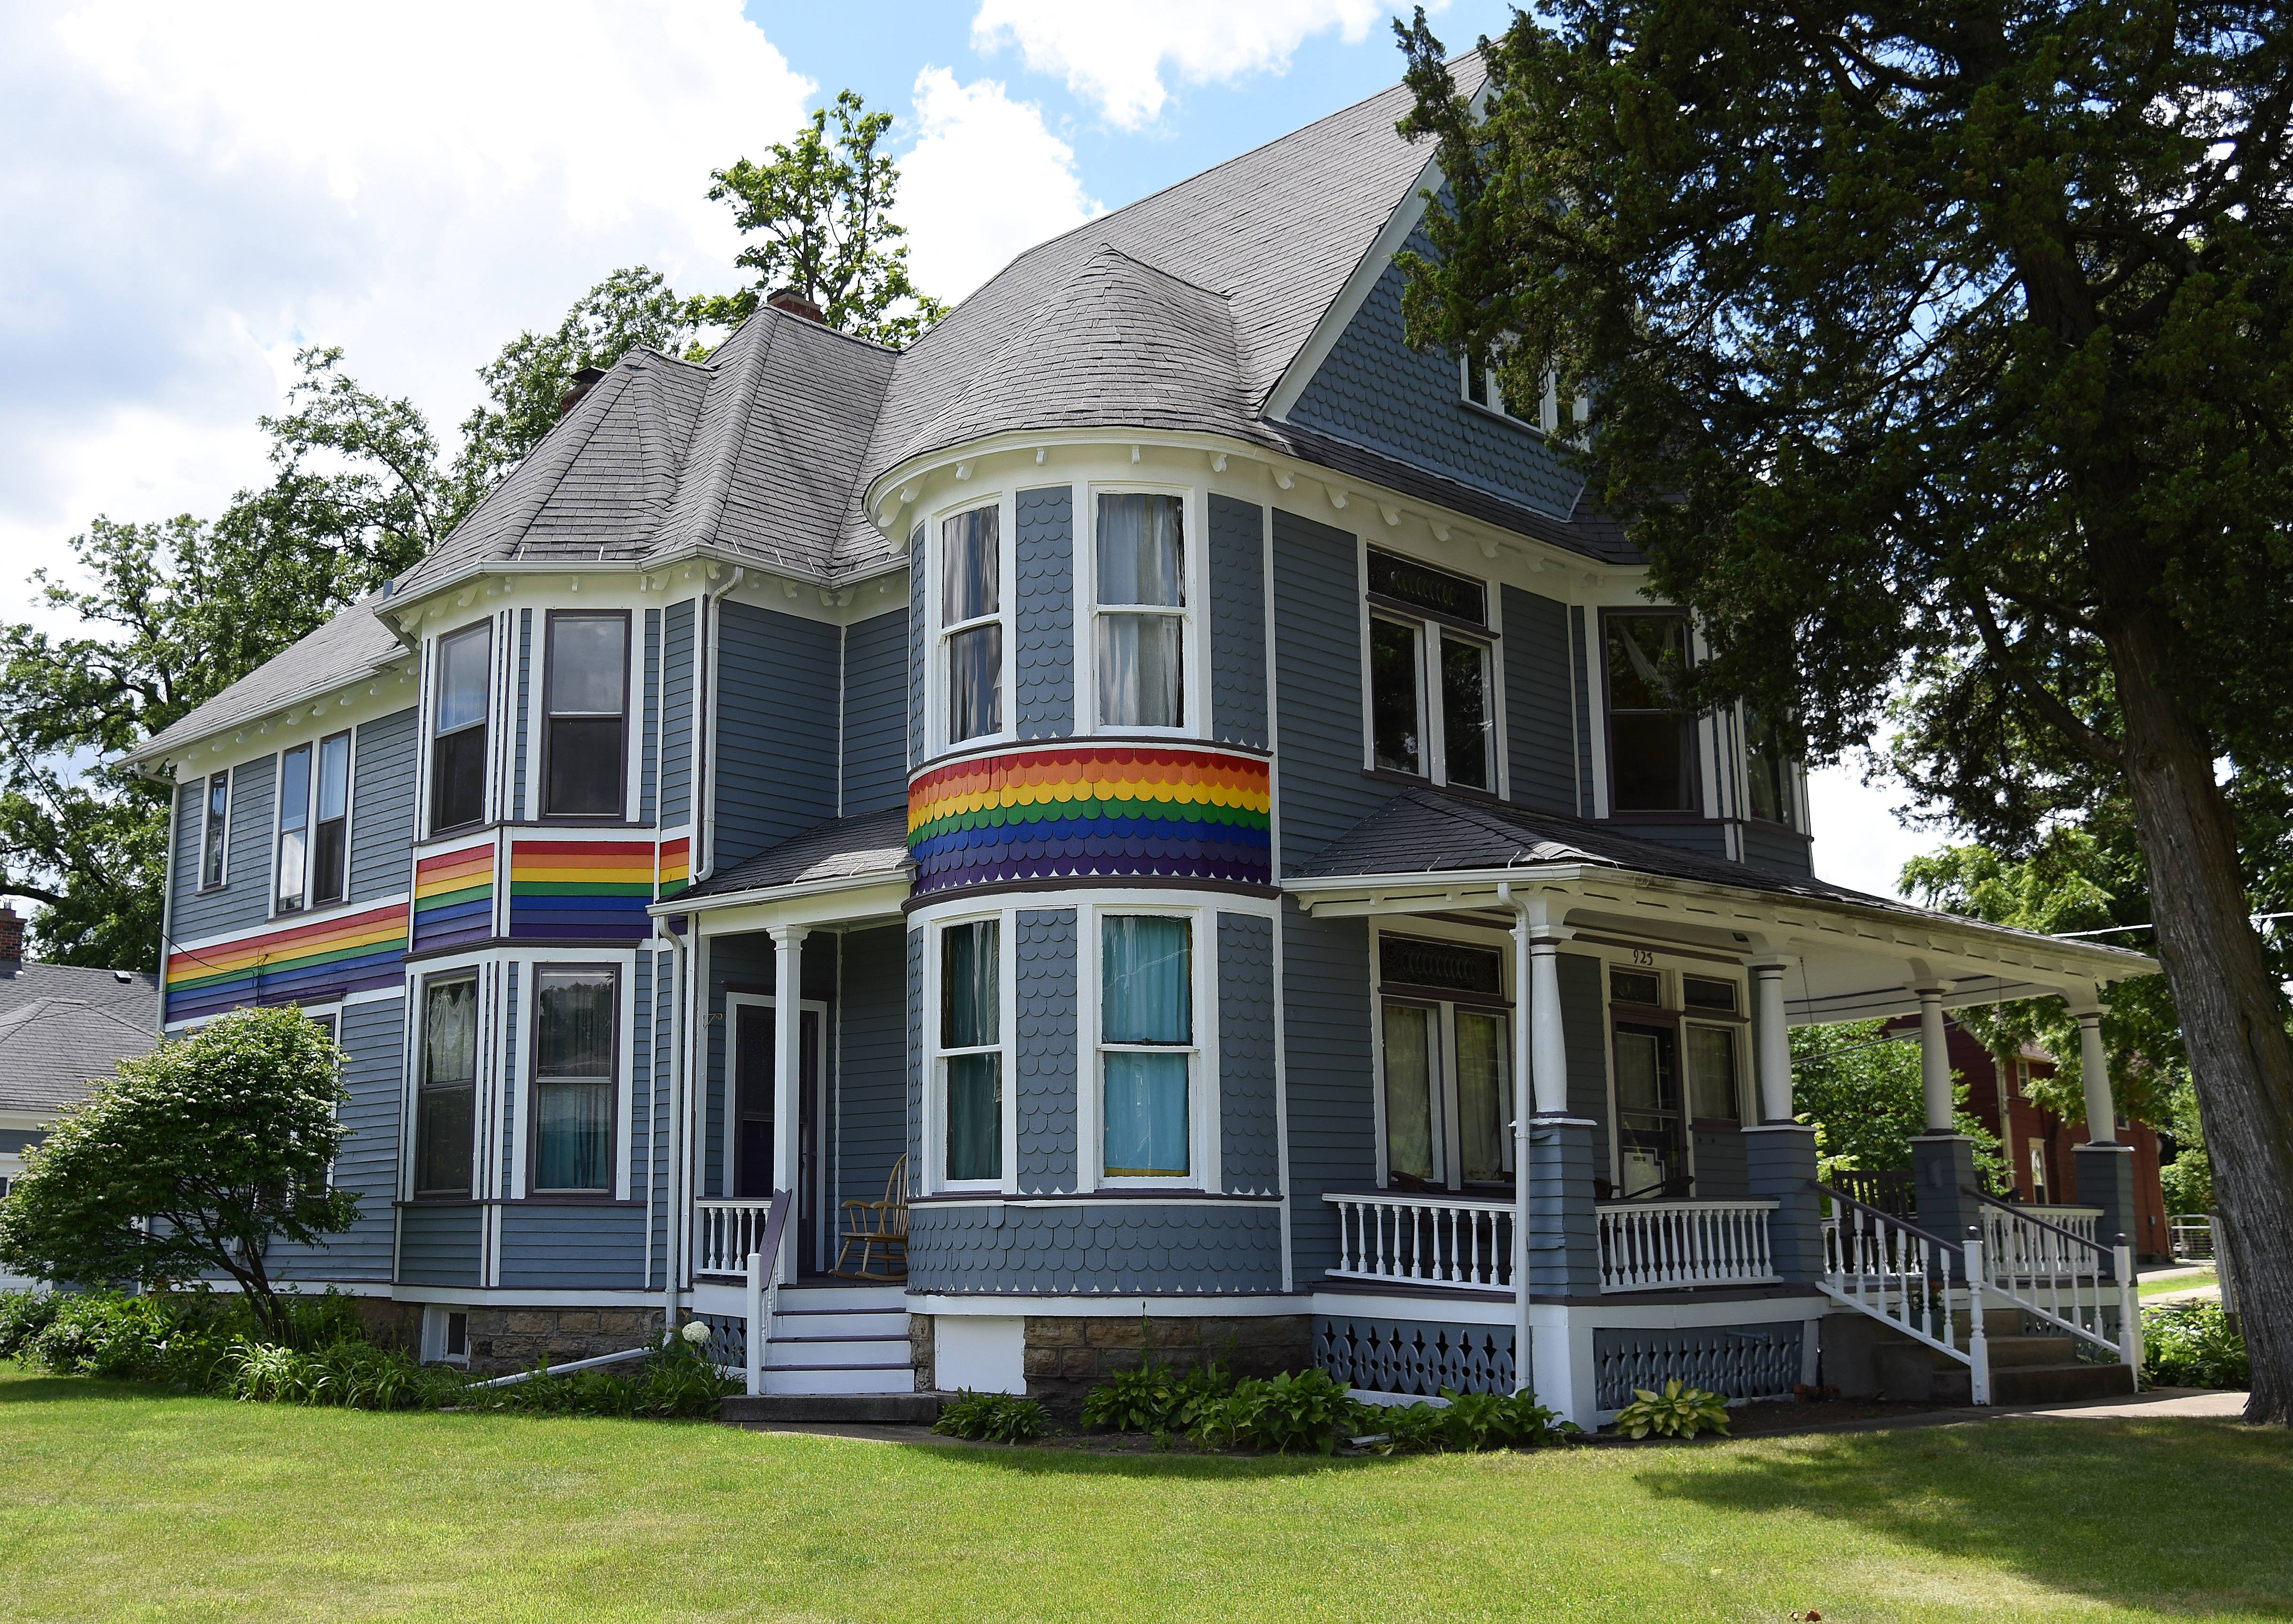 Church of the Brethren Inc. in Elgin wants painter Joshua Martin to paint over a gay pride-like rainbow on a house it owns at 923 W. Highland Ave. The rainbow is at the center of a dispute between Martin and a neighbor.